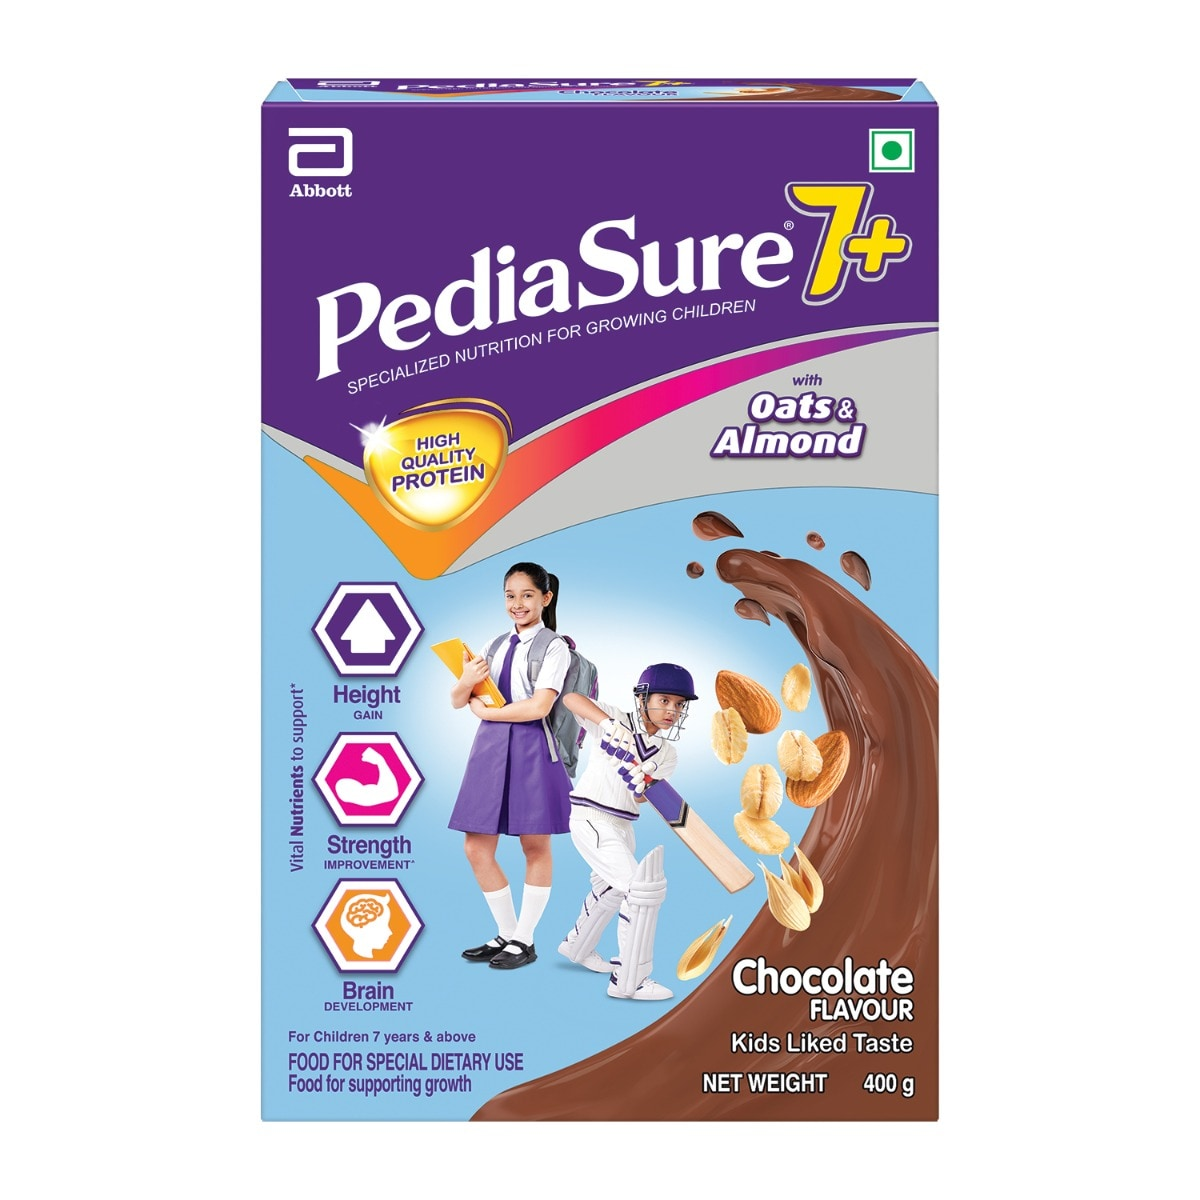 Pediasure Chocolate Flavoured Kids Nutrition Drink 7+ Years, 400 gm Refill Pack, Pack of 1